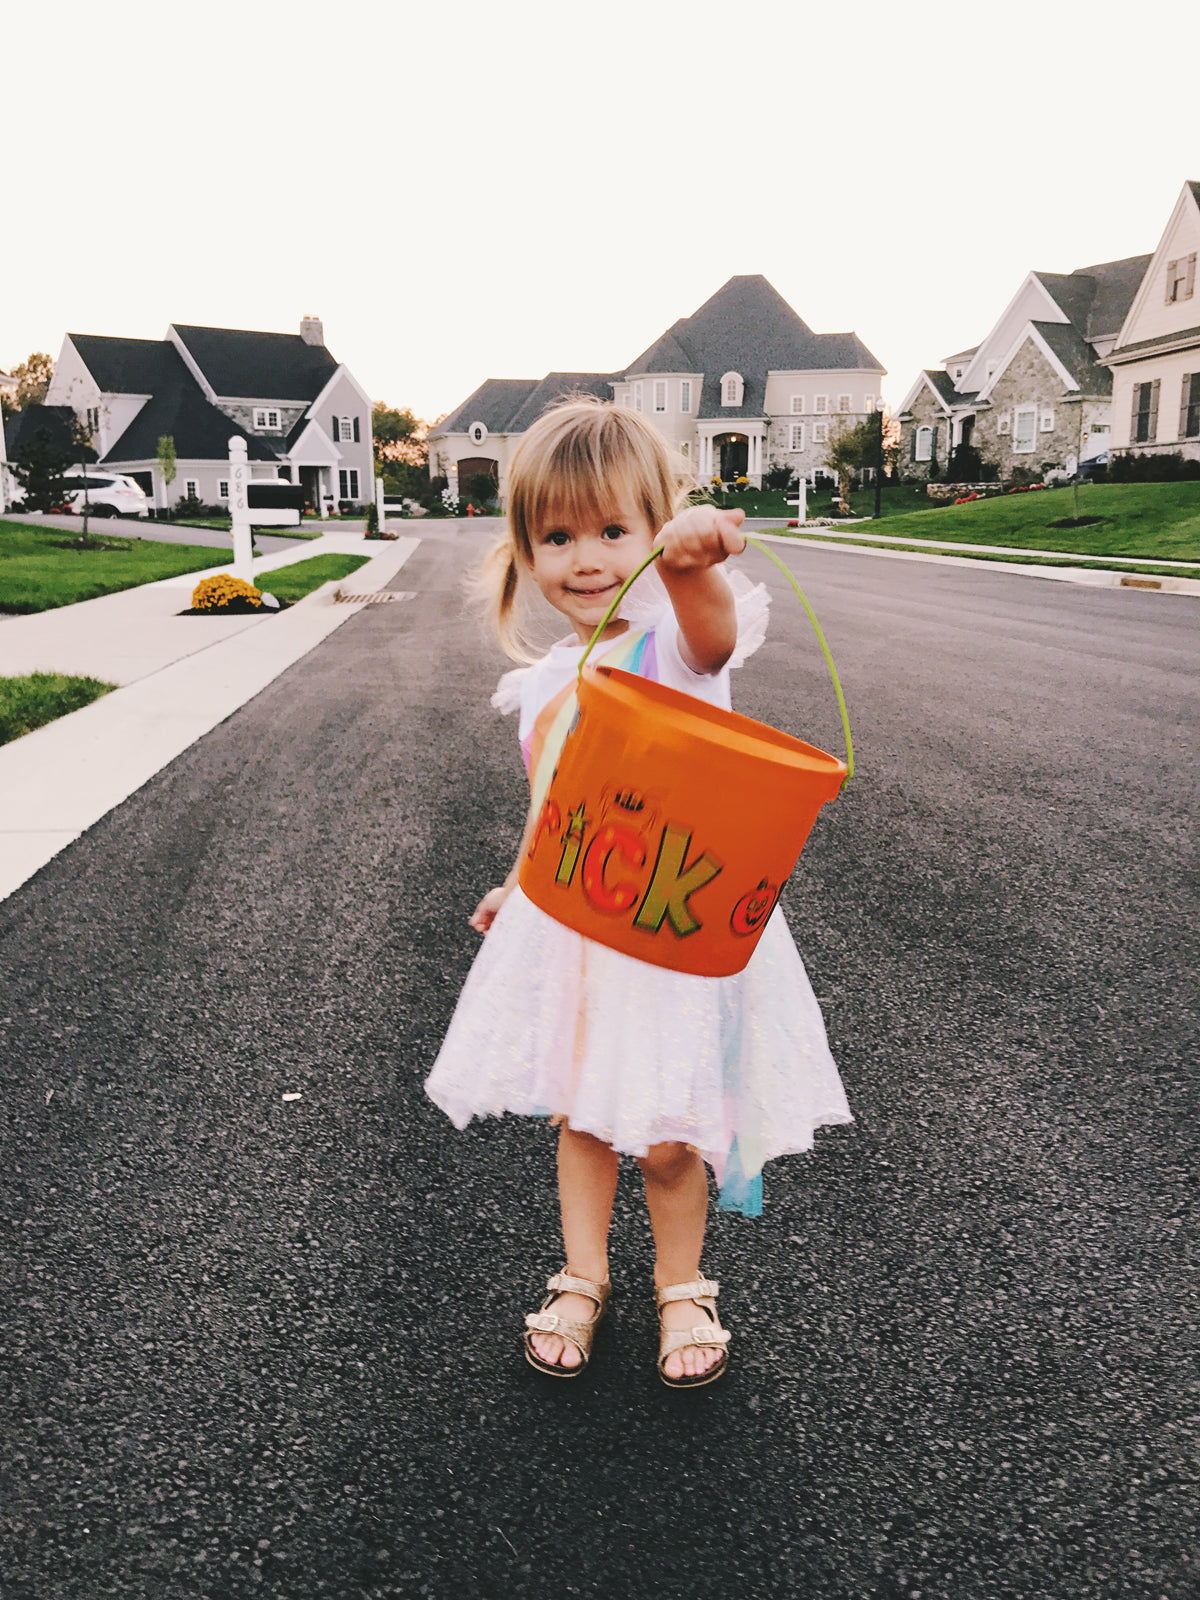 6 Tips To Take Better Photos of Your Kids via walk in love.